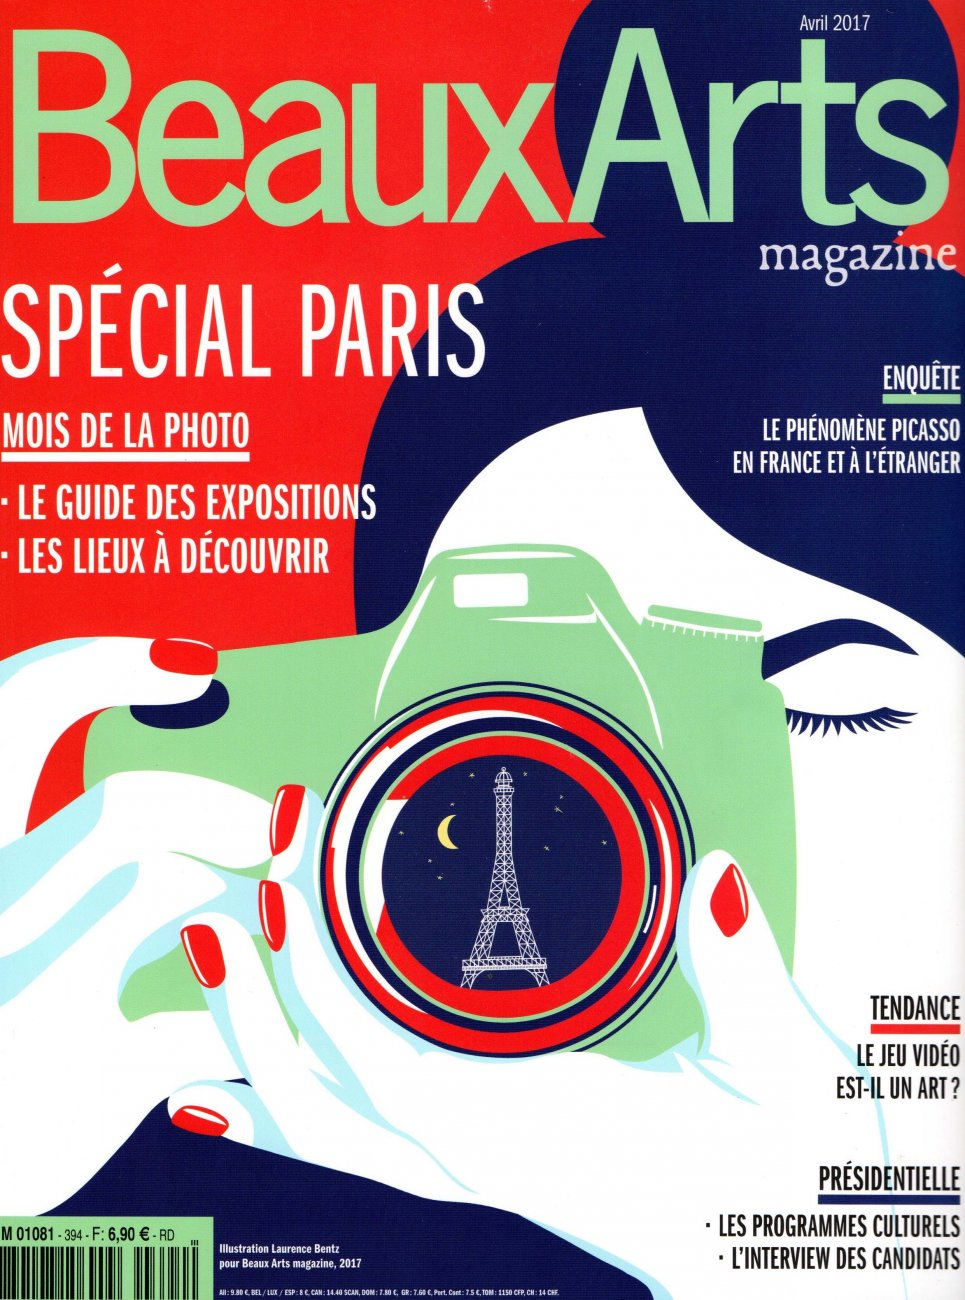 Beaux Arts Special Paris / April 2017 / Beaux Arts Magazine